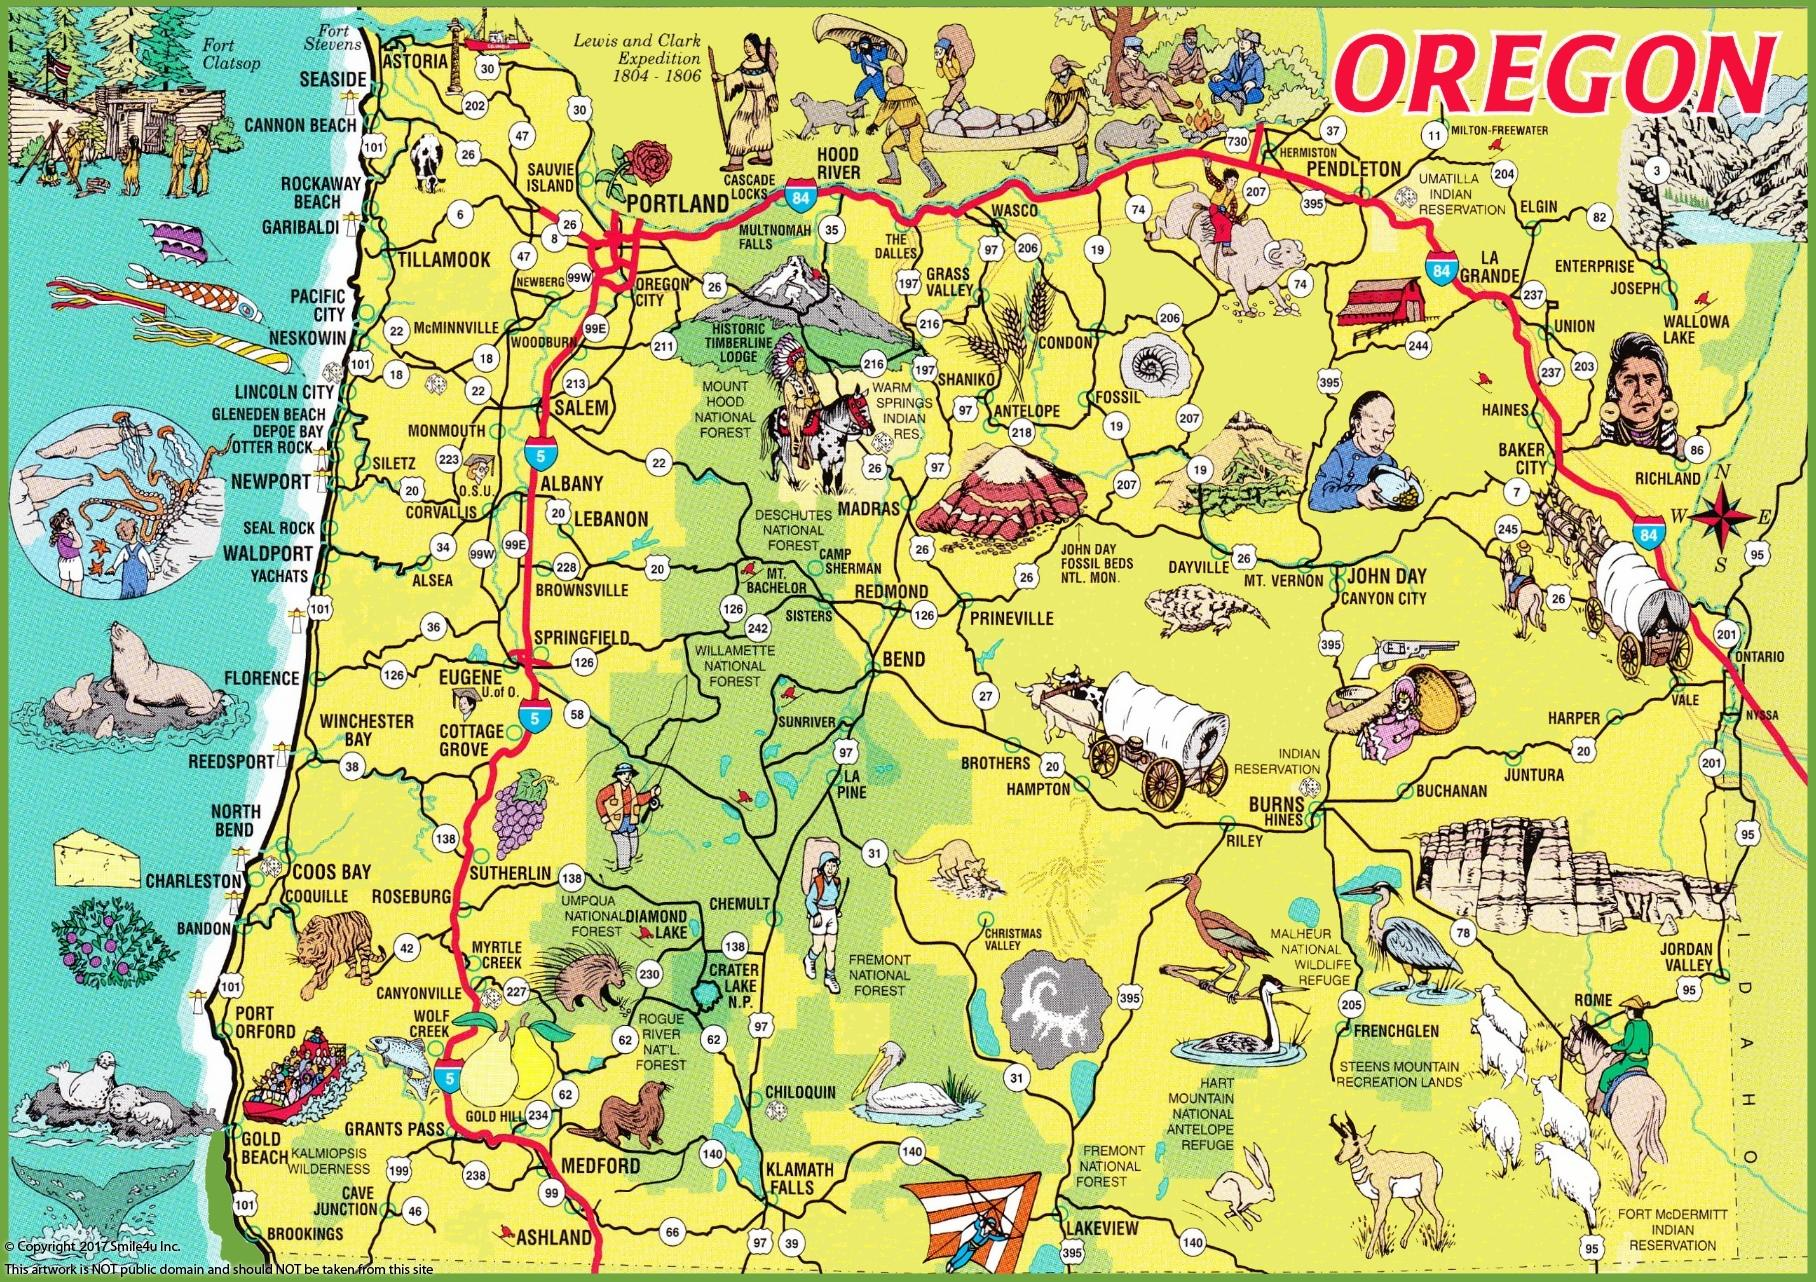 597668_watermarked_pictorial-travel-map-of-oregon.jpg